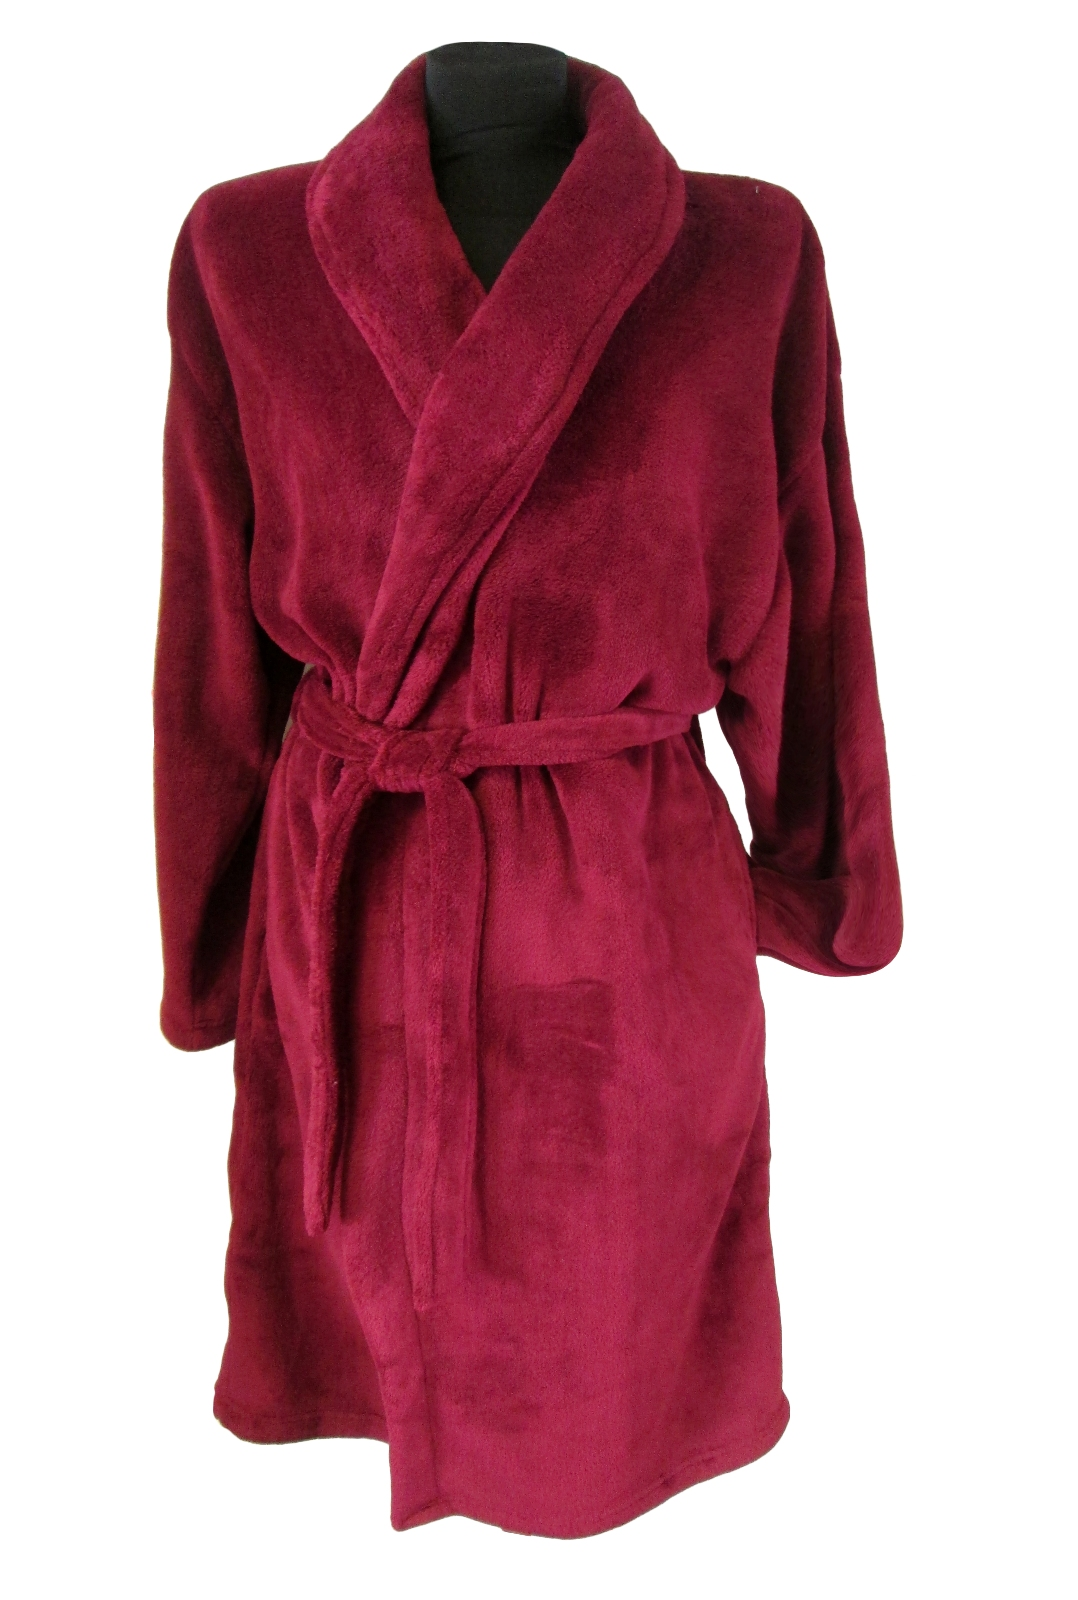 Mens Luxury Dressing Gowns Fleece Bath Robes House Coat